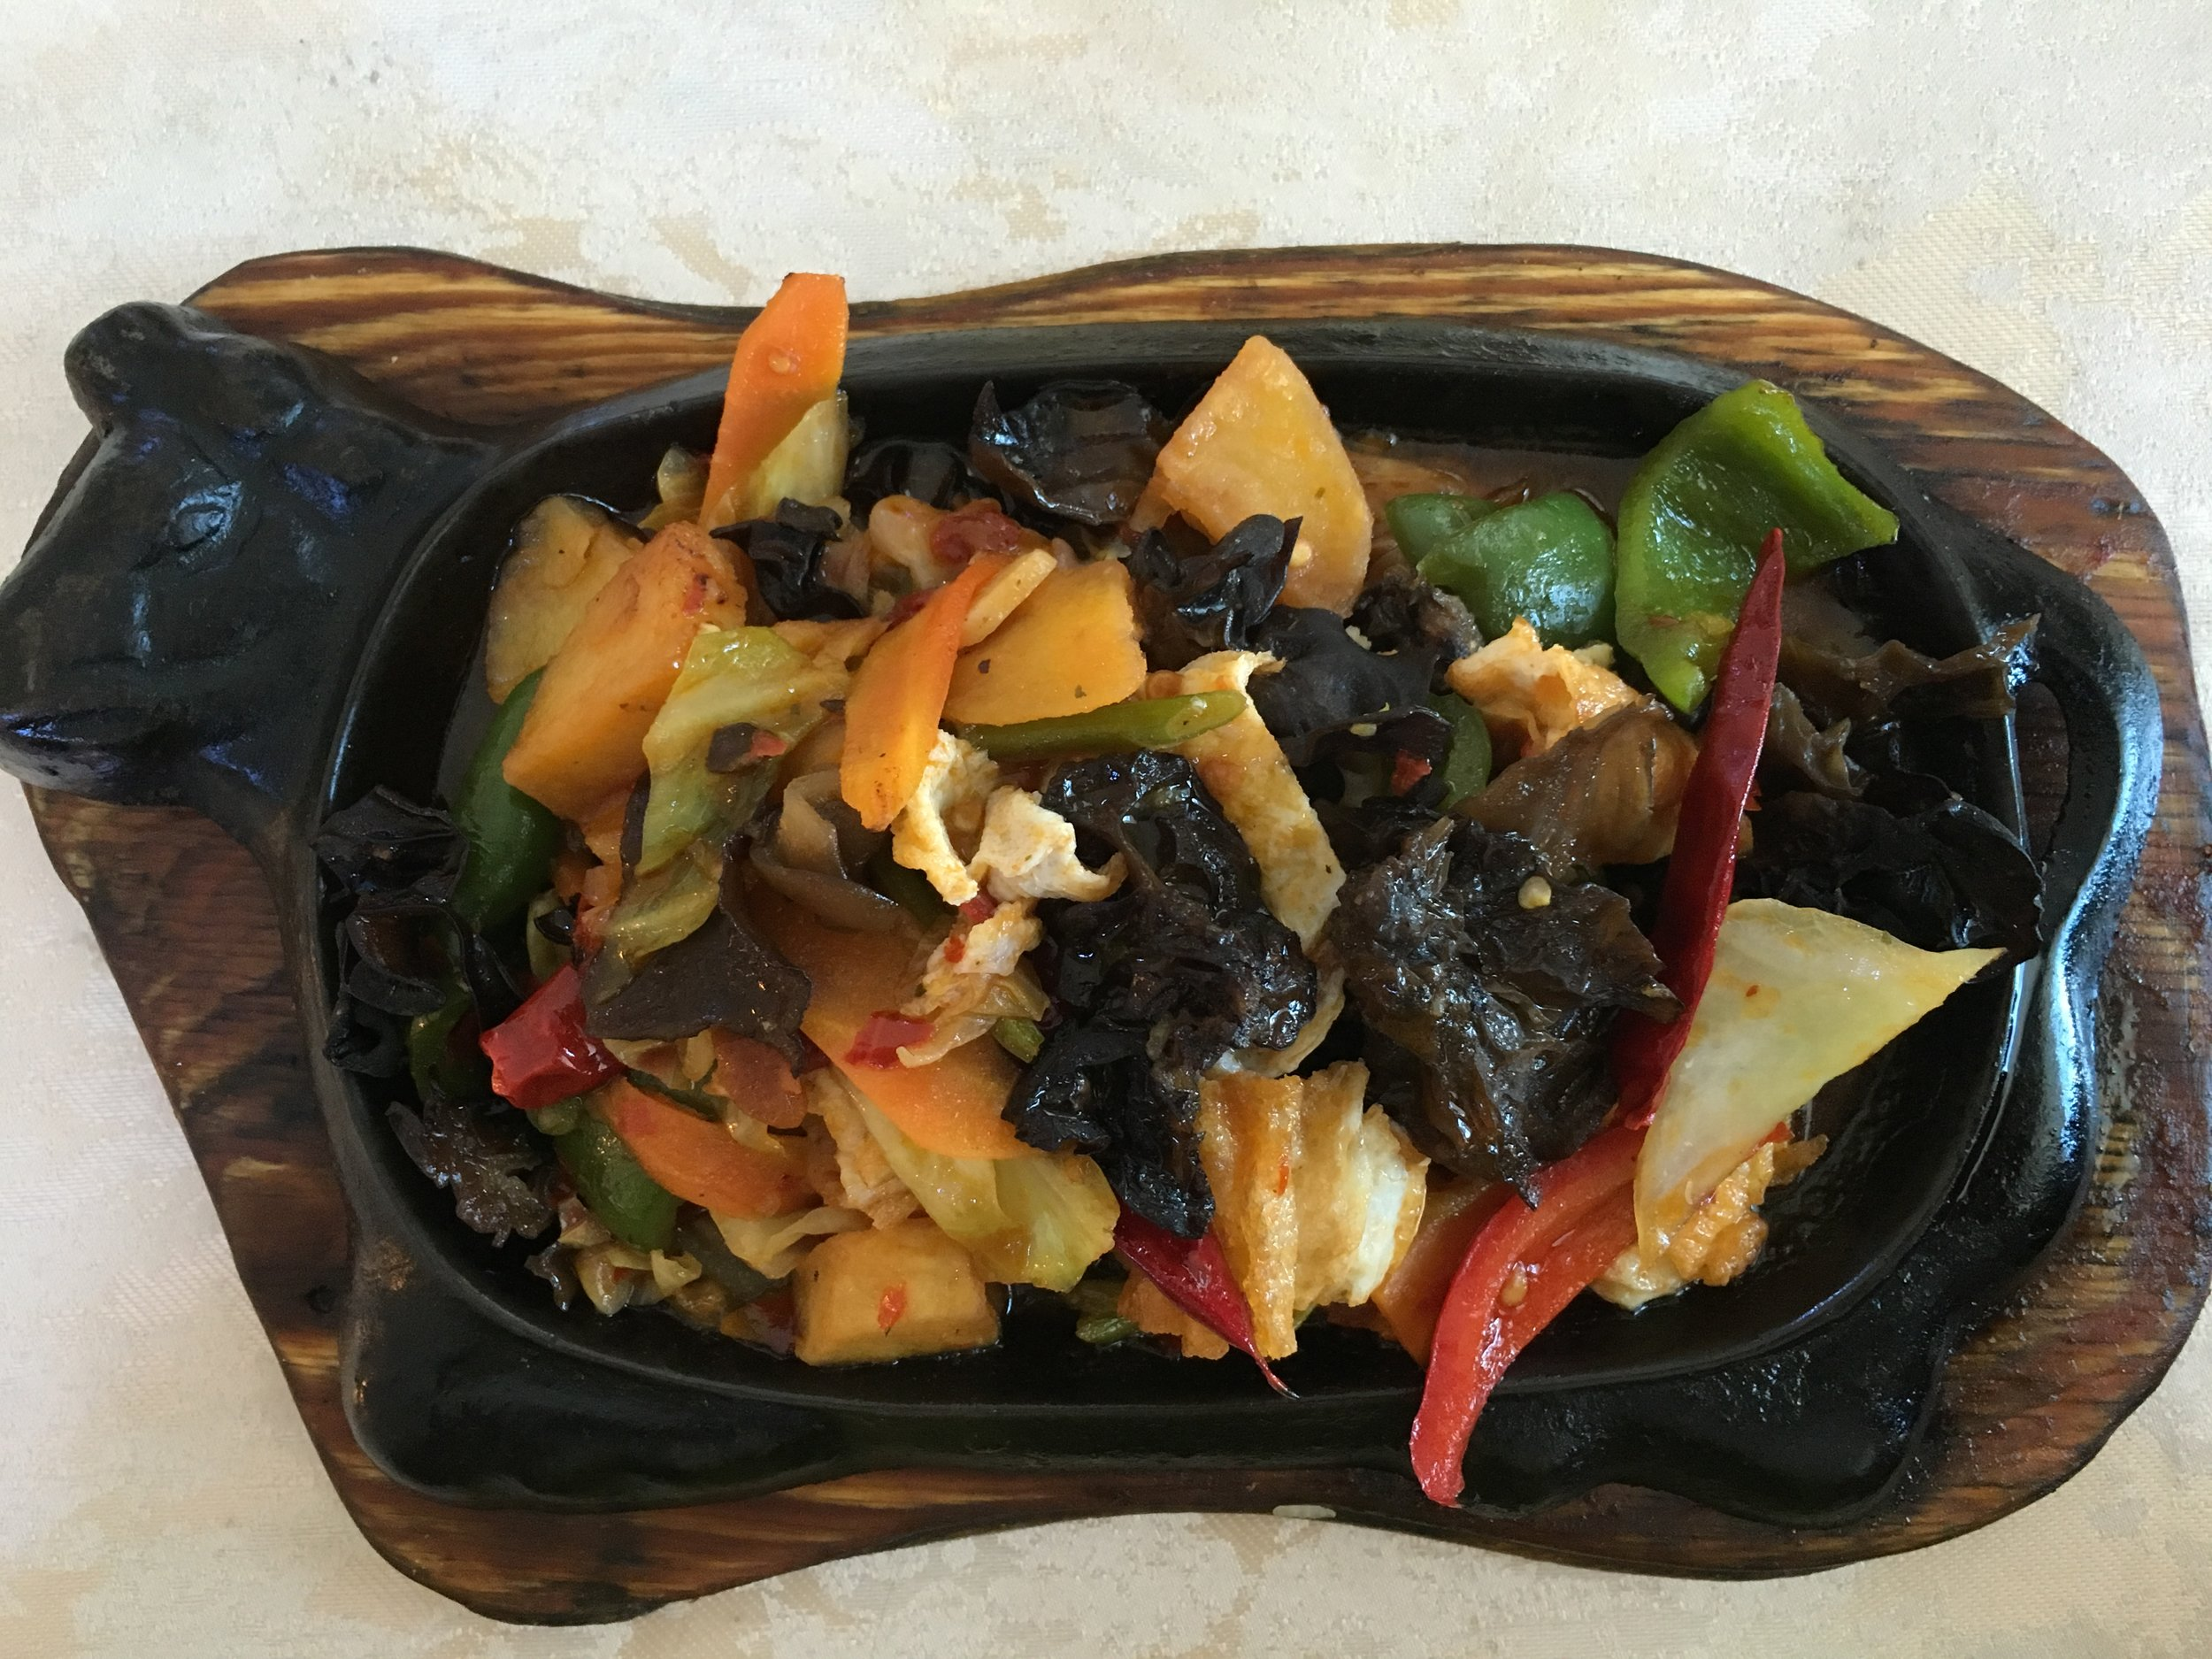 Delicious vegetarian dish of sizzling peppers and mushrooms